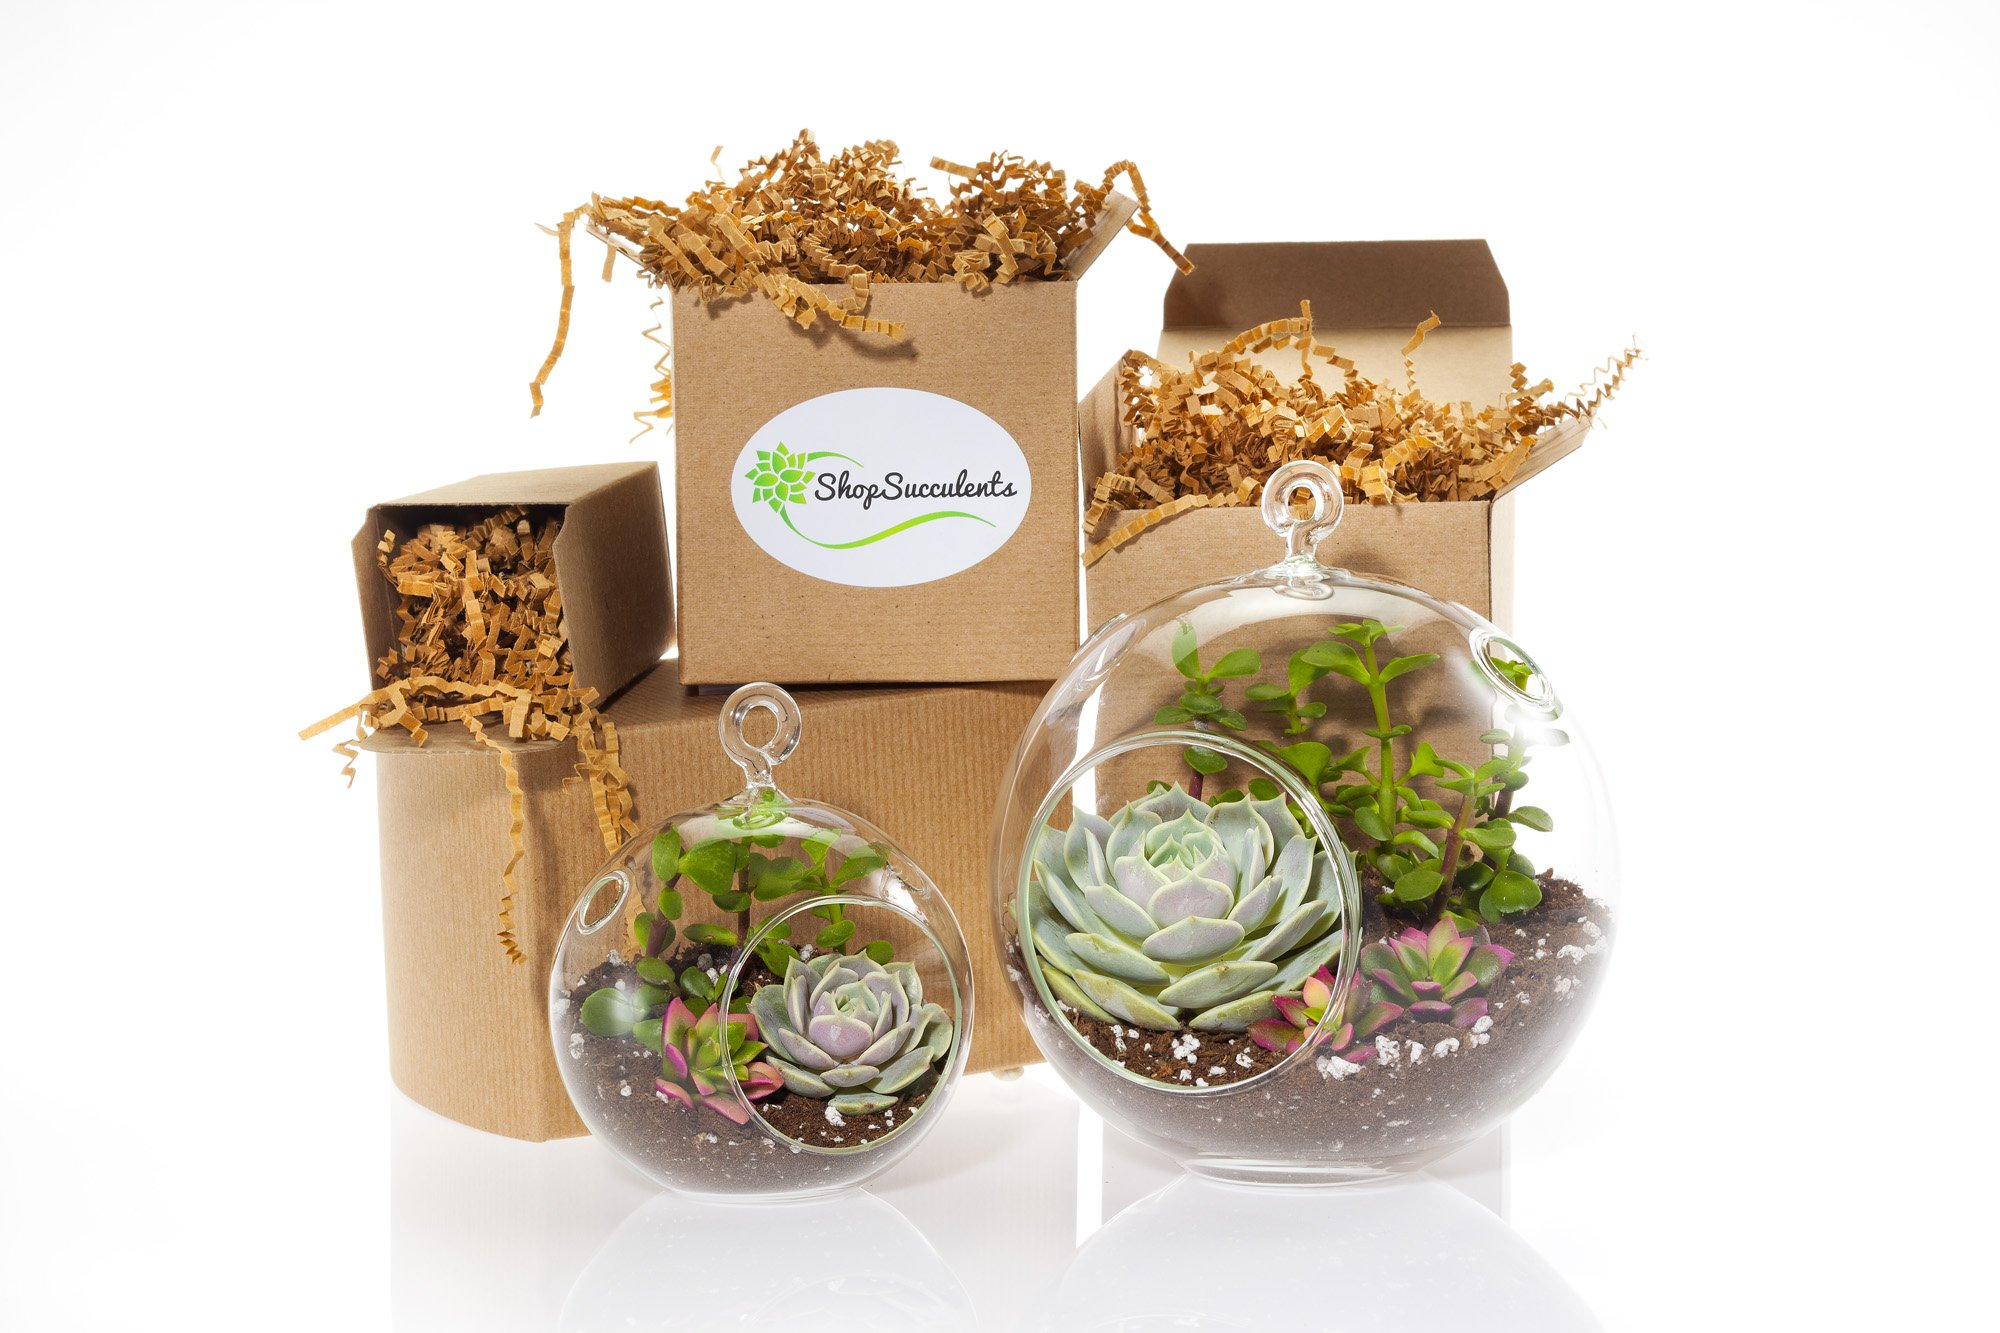 Shop Succulents | Duo Globe Modern Terrium Collection, Hand Selected Variety of Live Succulents | Collection of 2